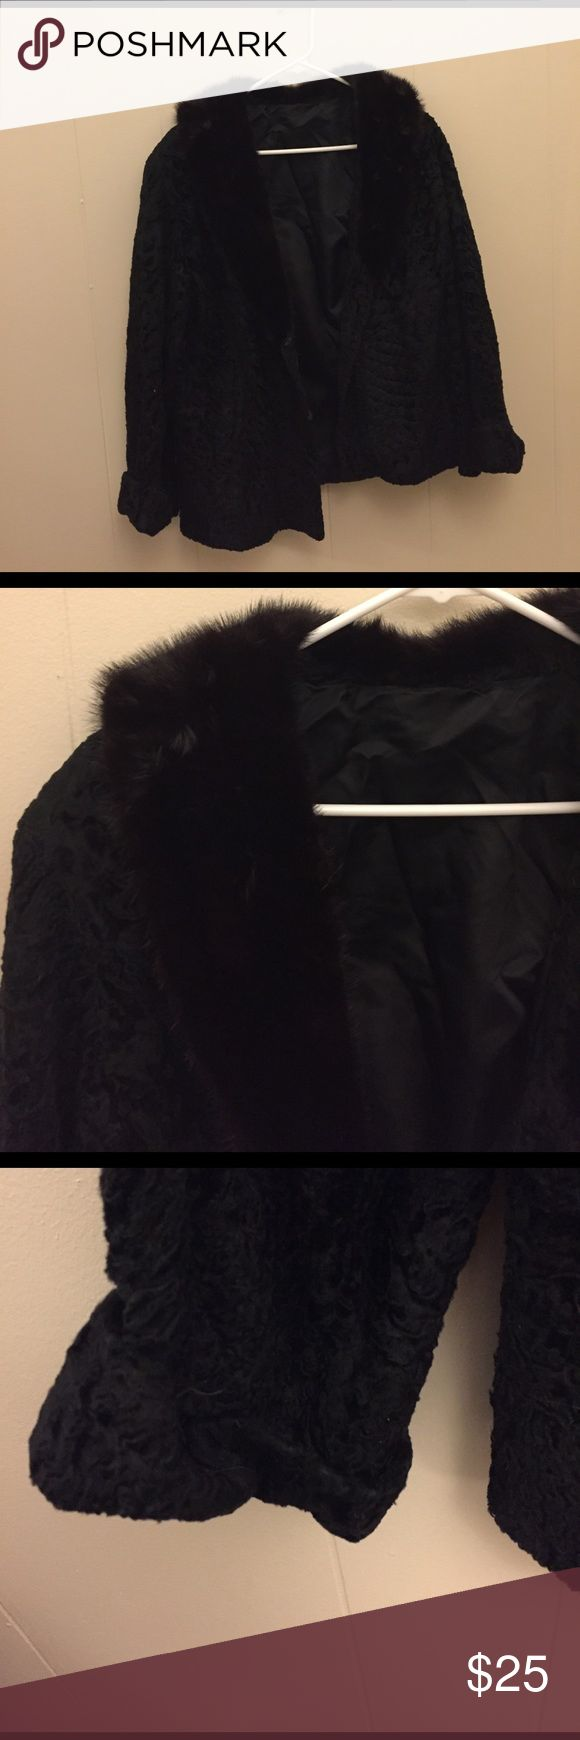 Real fur jacket with velvet base Super warm and fuzzy fur coat with velvet base , folded sleeves and fur collar, hooked buttons attached Jackets & Coats